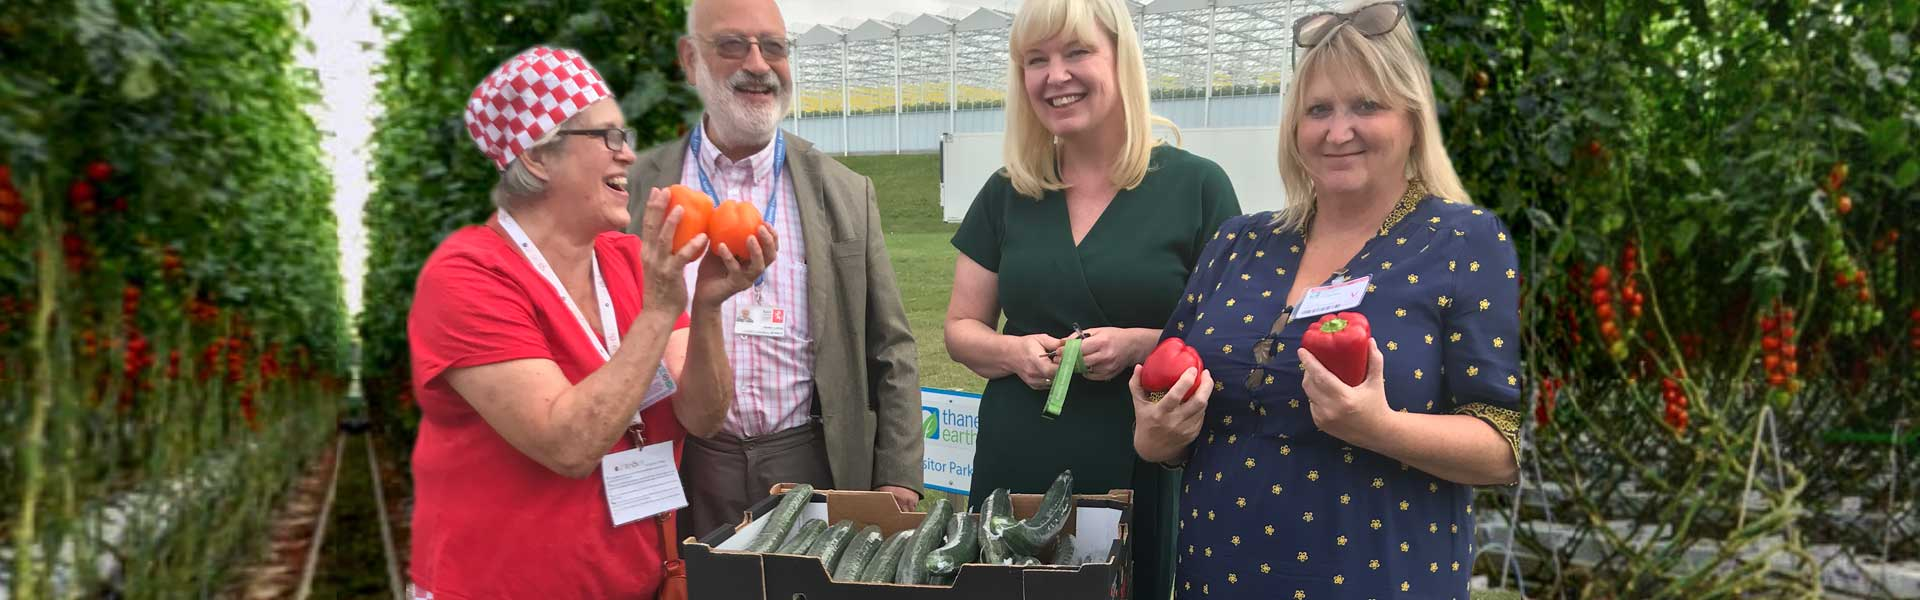 Karen Constantine and the Summer Kitchen project at Thanet Earth